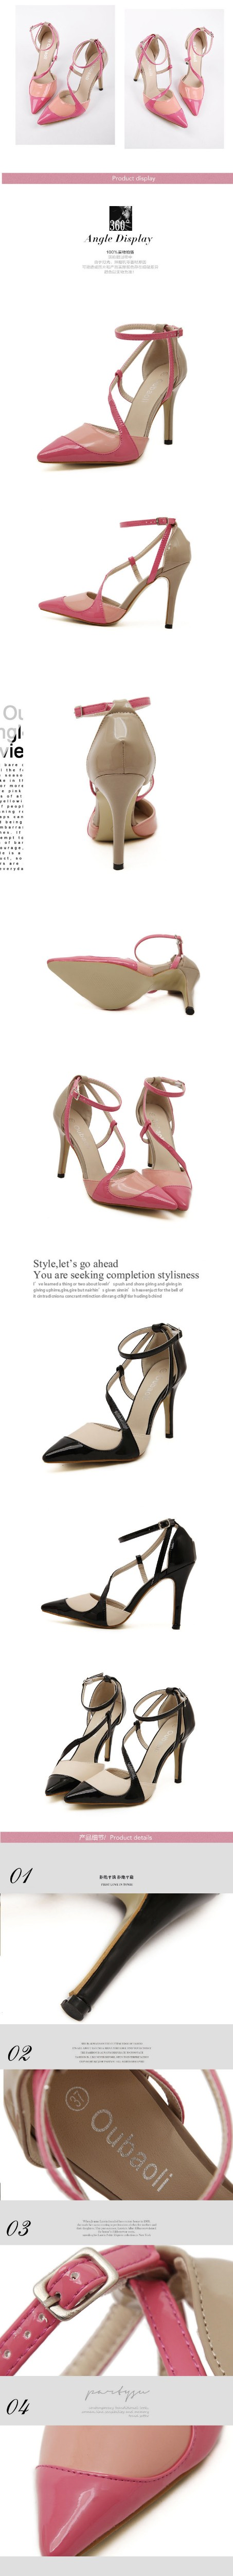 2016 New Ankle Strap Thin High Heels Women Pumps Sexy Pointed Toe Buckle Party Shoes New Ladies Stiletto Shoes Black Pink ZX2.5